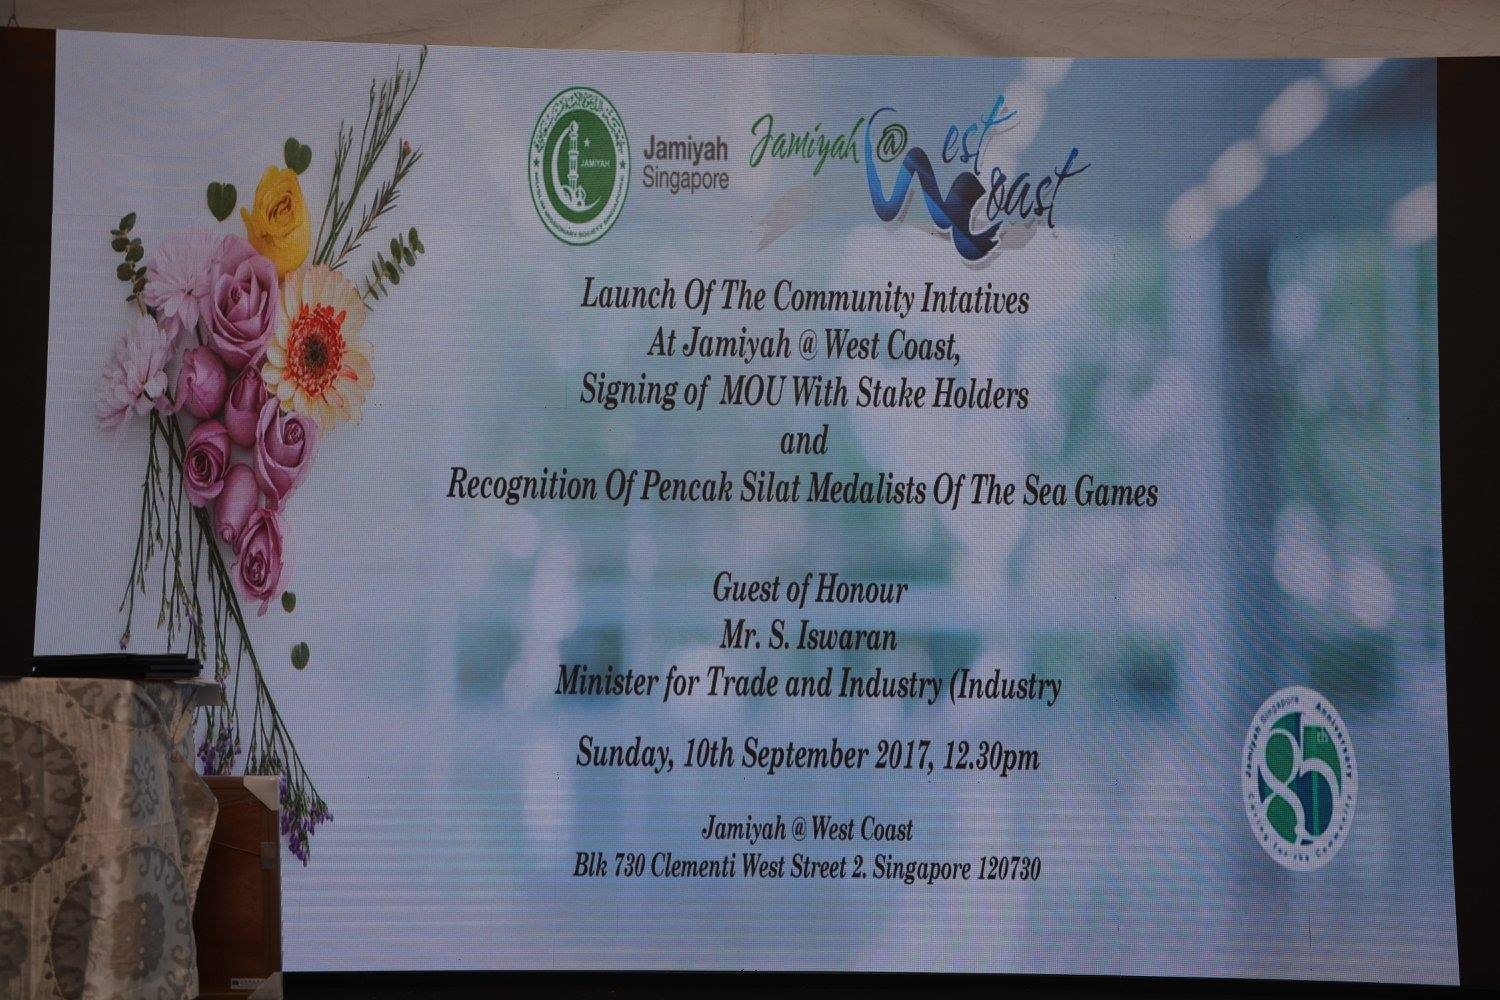 The Launch of Community Initiatives At Jamiyah @ West Coast